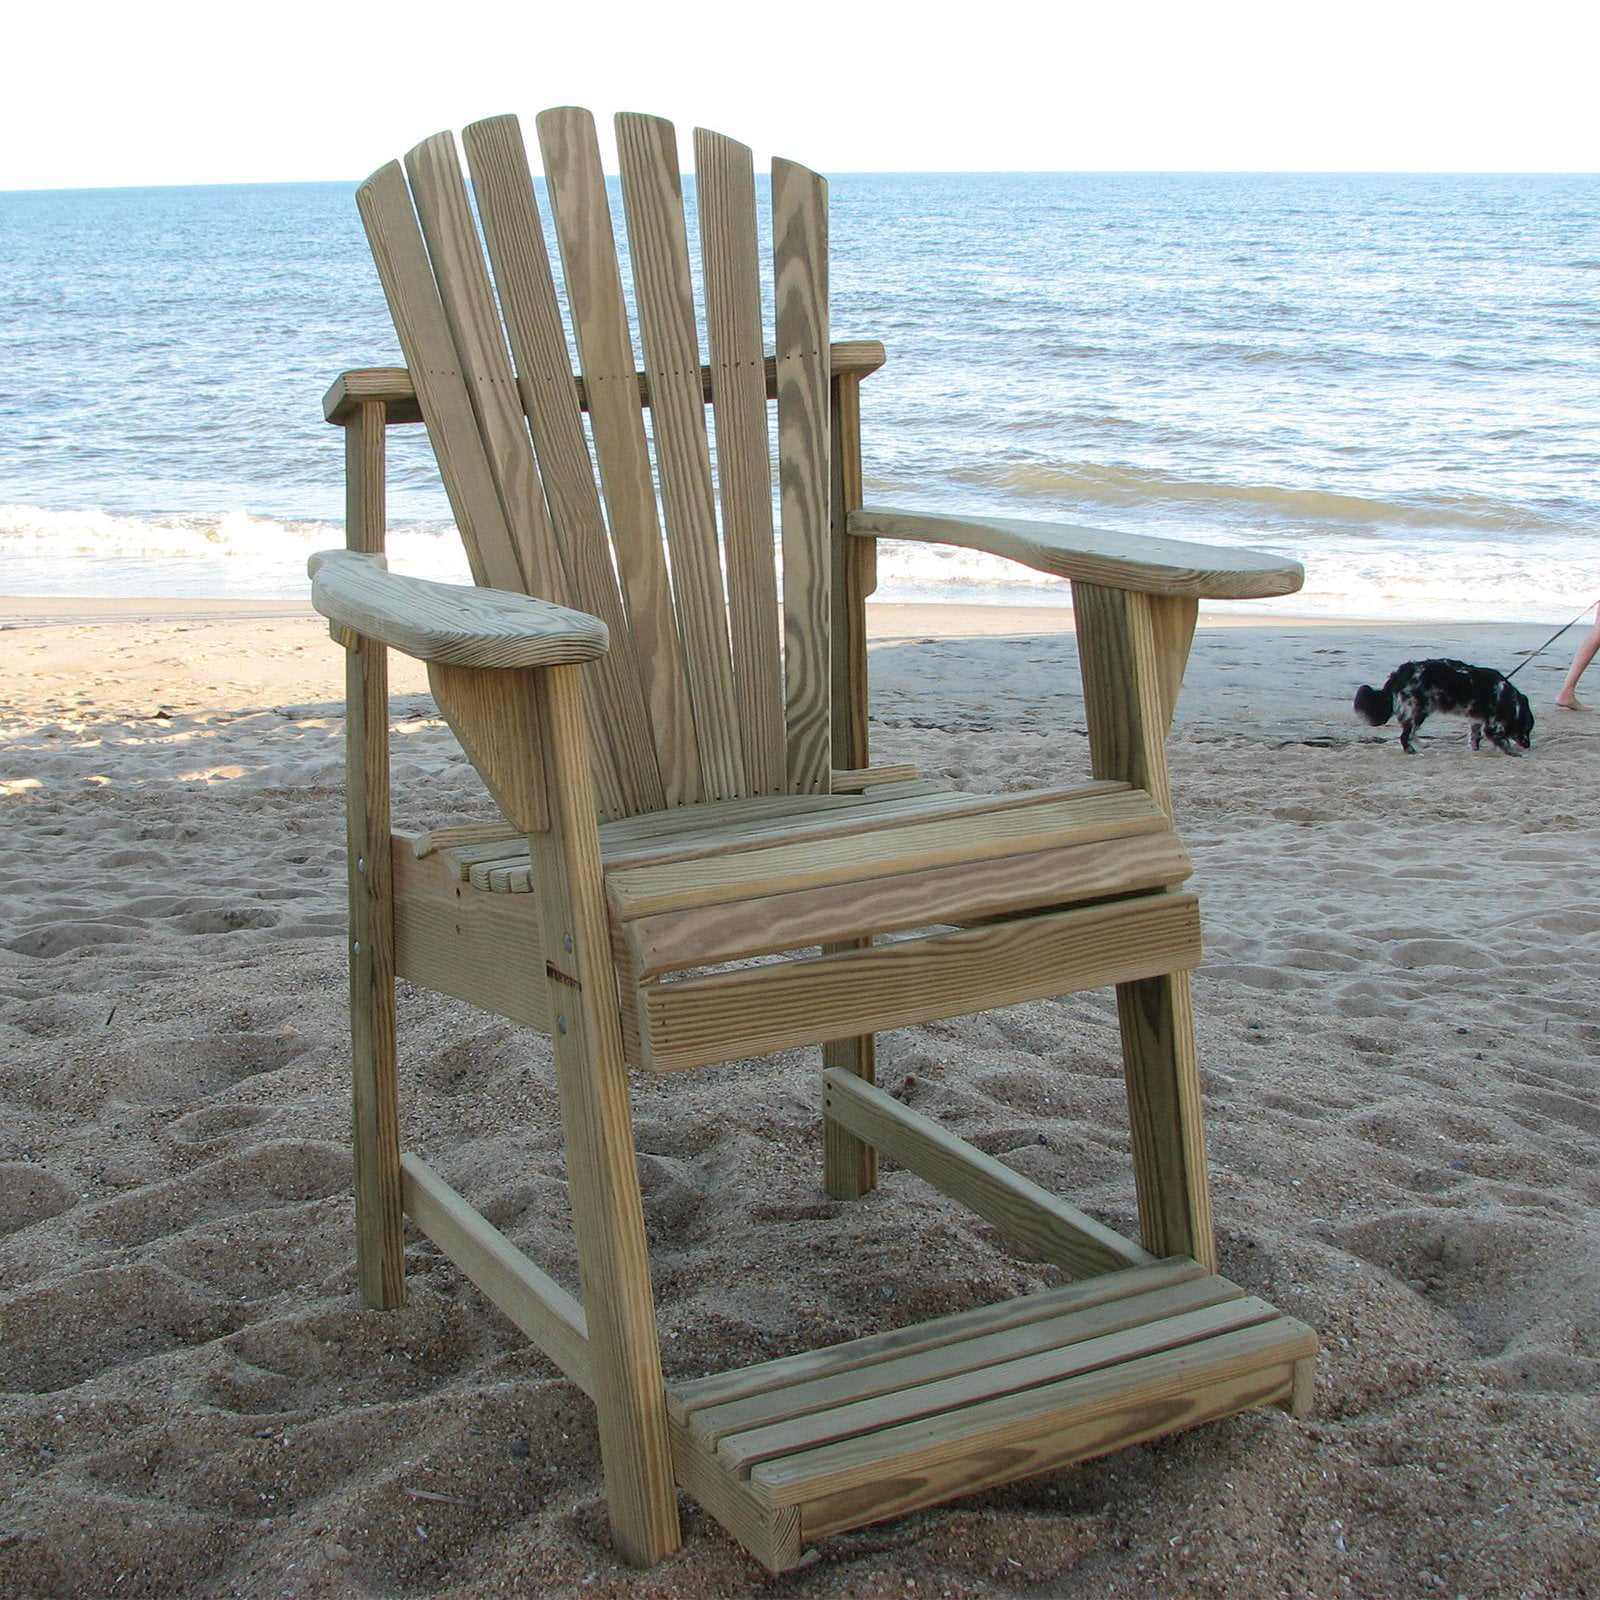 Charming Weathercraft Designers Choice Treated Balcony Adirondack Chair With  Footrest   Natural   Walmart.com